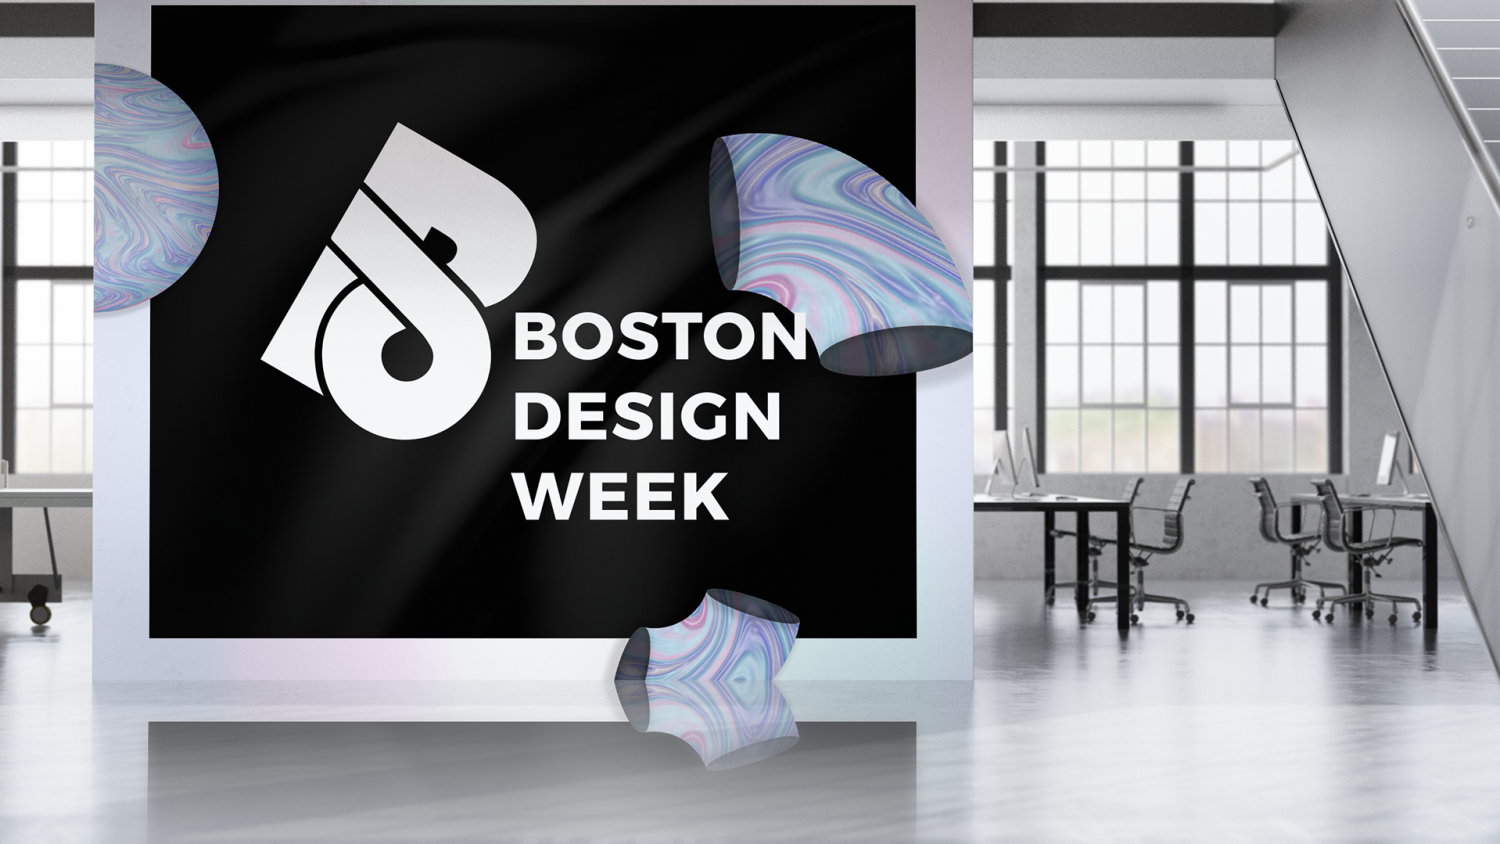 boston design week logo boston design week BOSTON DESIGN WEEK 2019 boston design 1